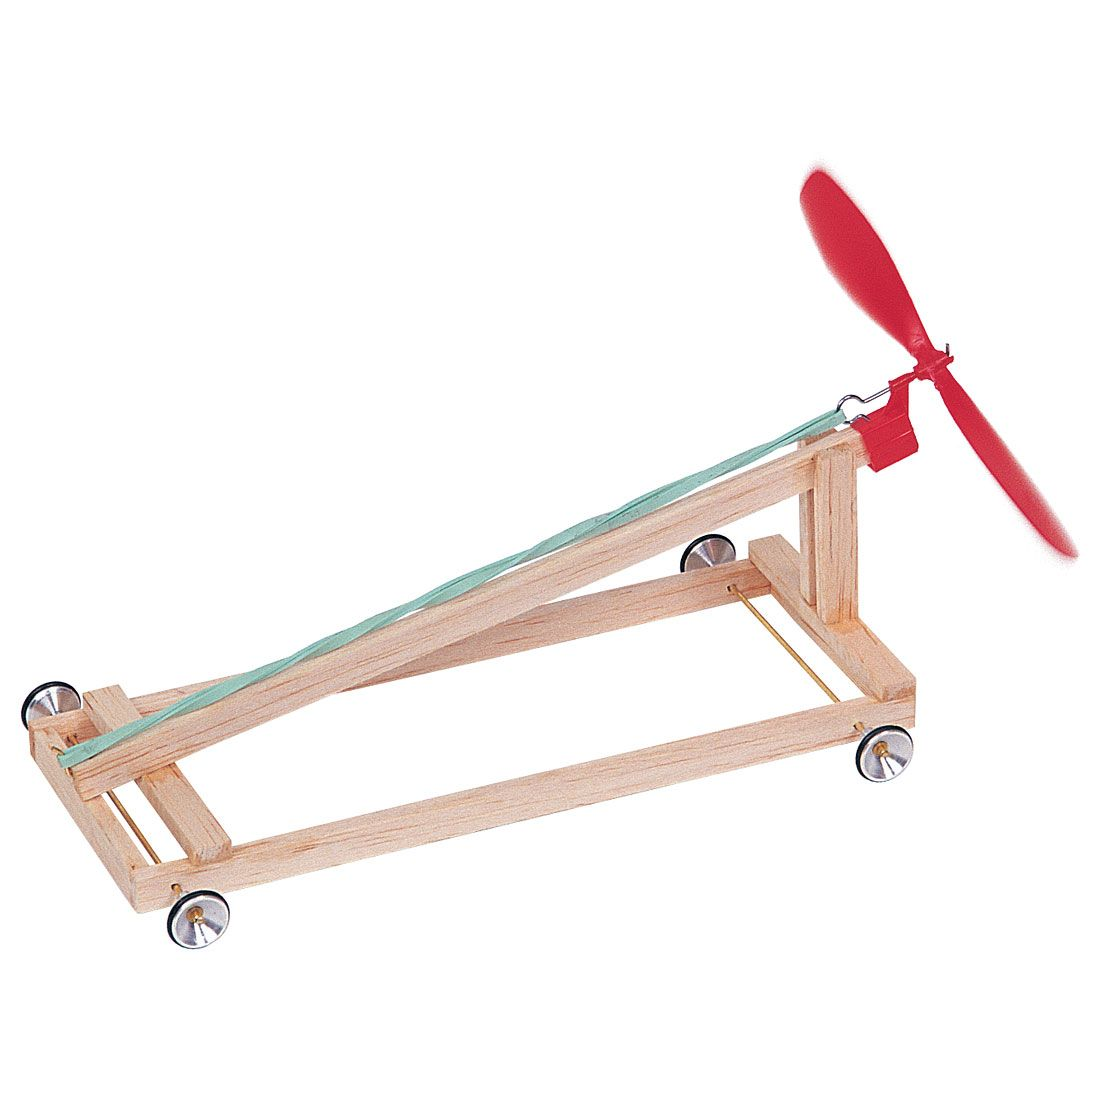 Propeller buggy something to do with the kiddos pinterest propeller buggy something to do with the kiddos pinterest rubber bands toy and wooden toys malvernweather Image collections